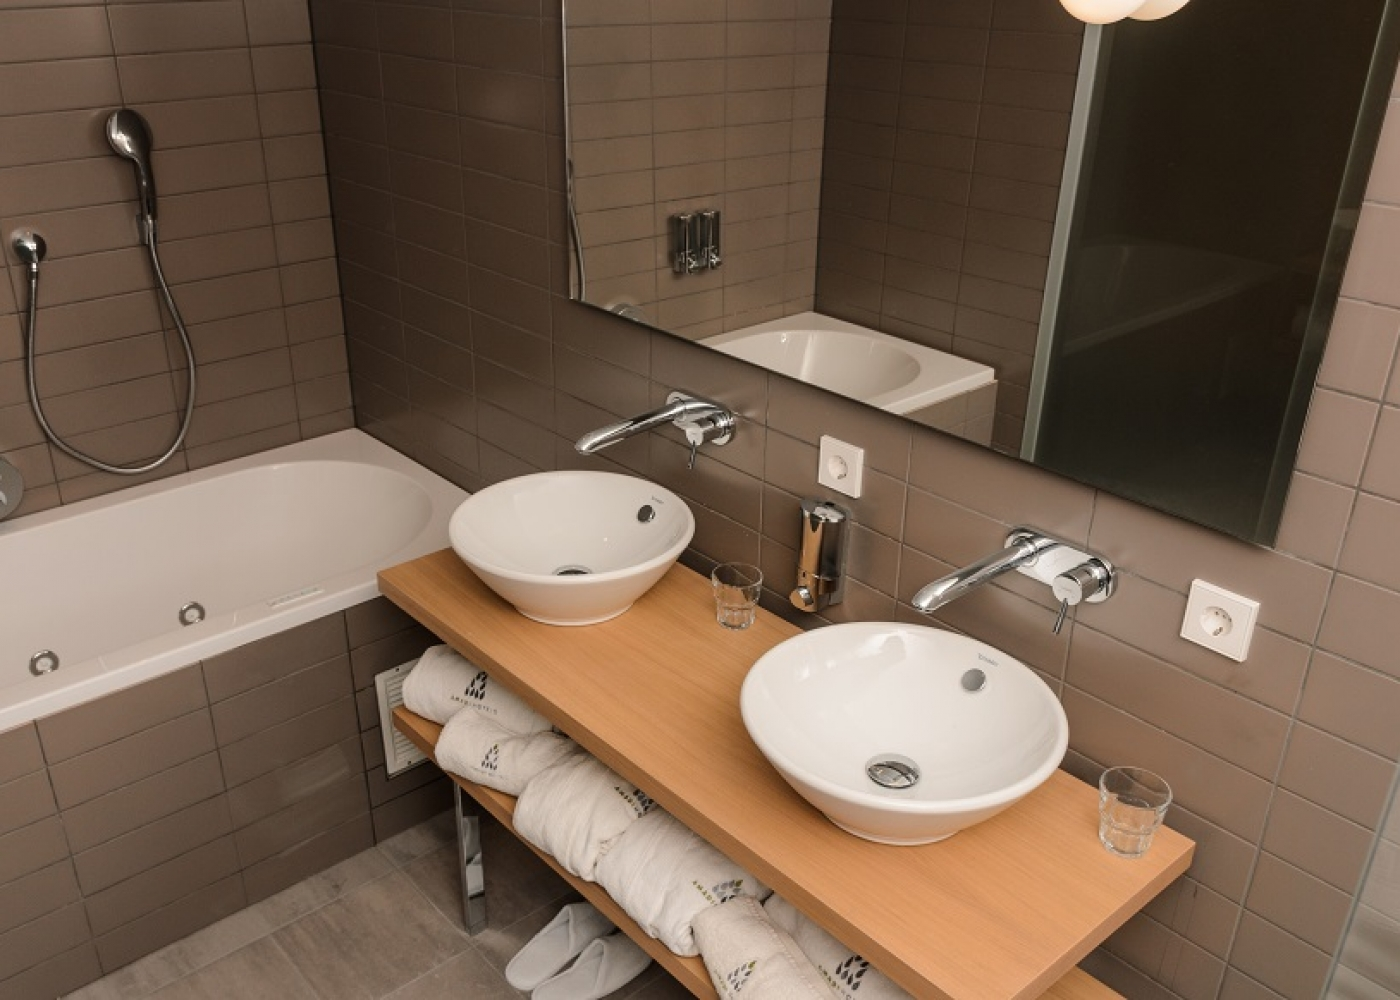 Amadi Panorama Hotel Amadi Panorama Hotel Amsterdam Contact A Stylish Stay In